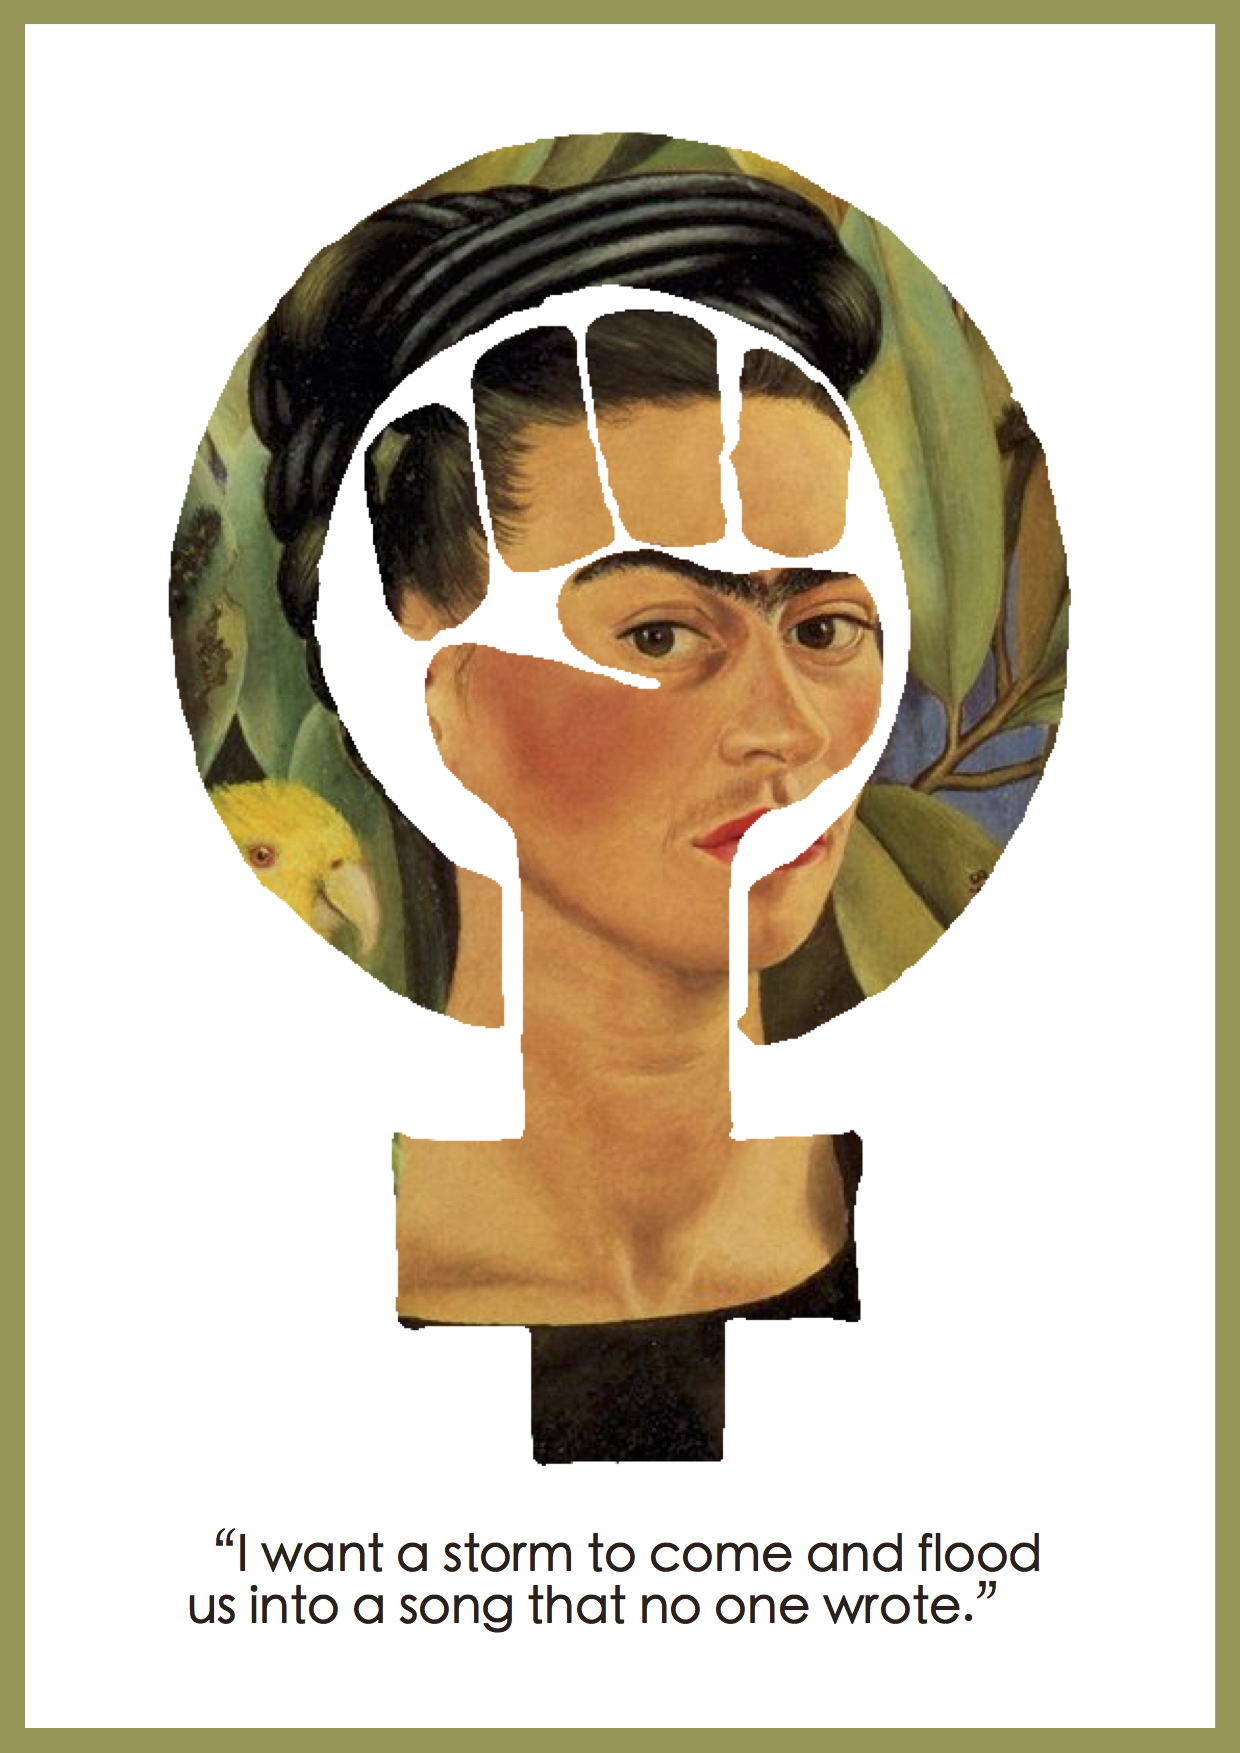 "Citat af Frida Kahlo: ""I want a storm to come and flood us into a song that no one wrote."" Originalfoto: flickr.com (public domain). Citatillustration: Maria Busch"